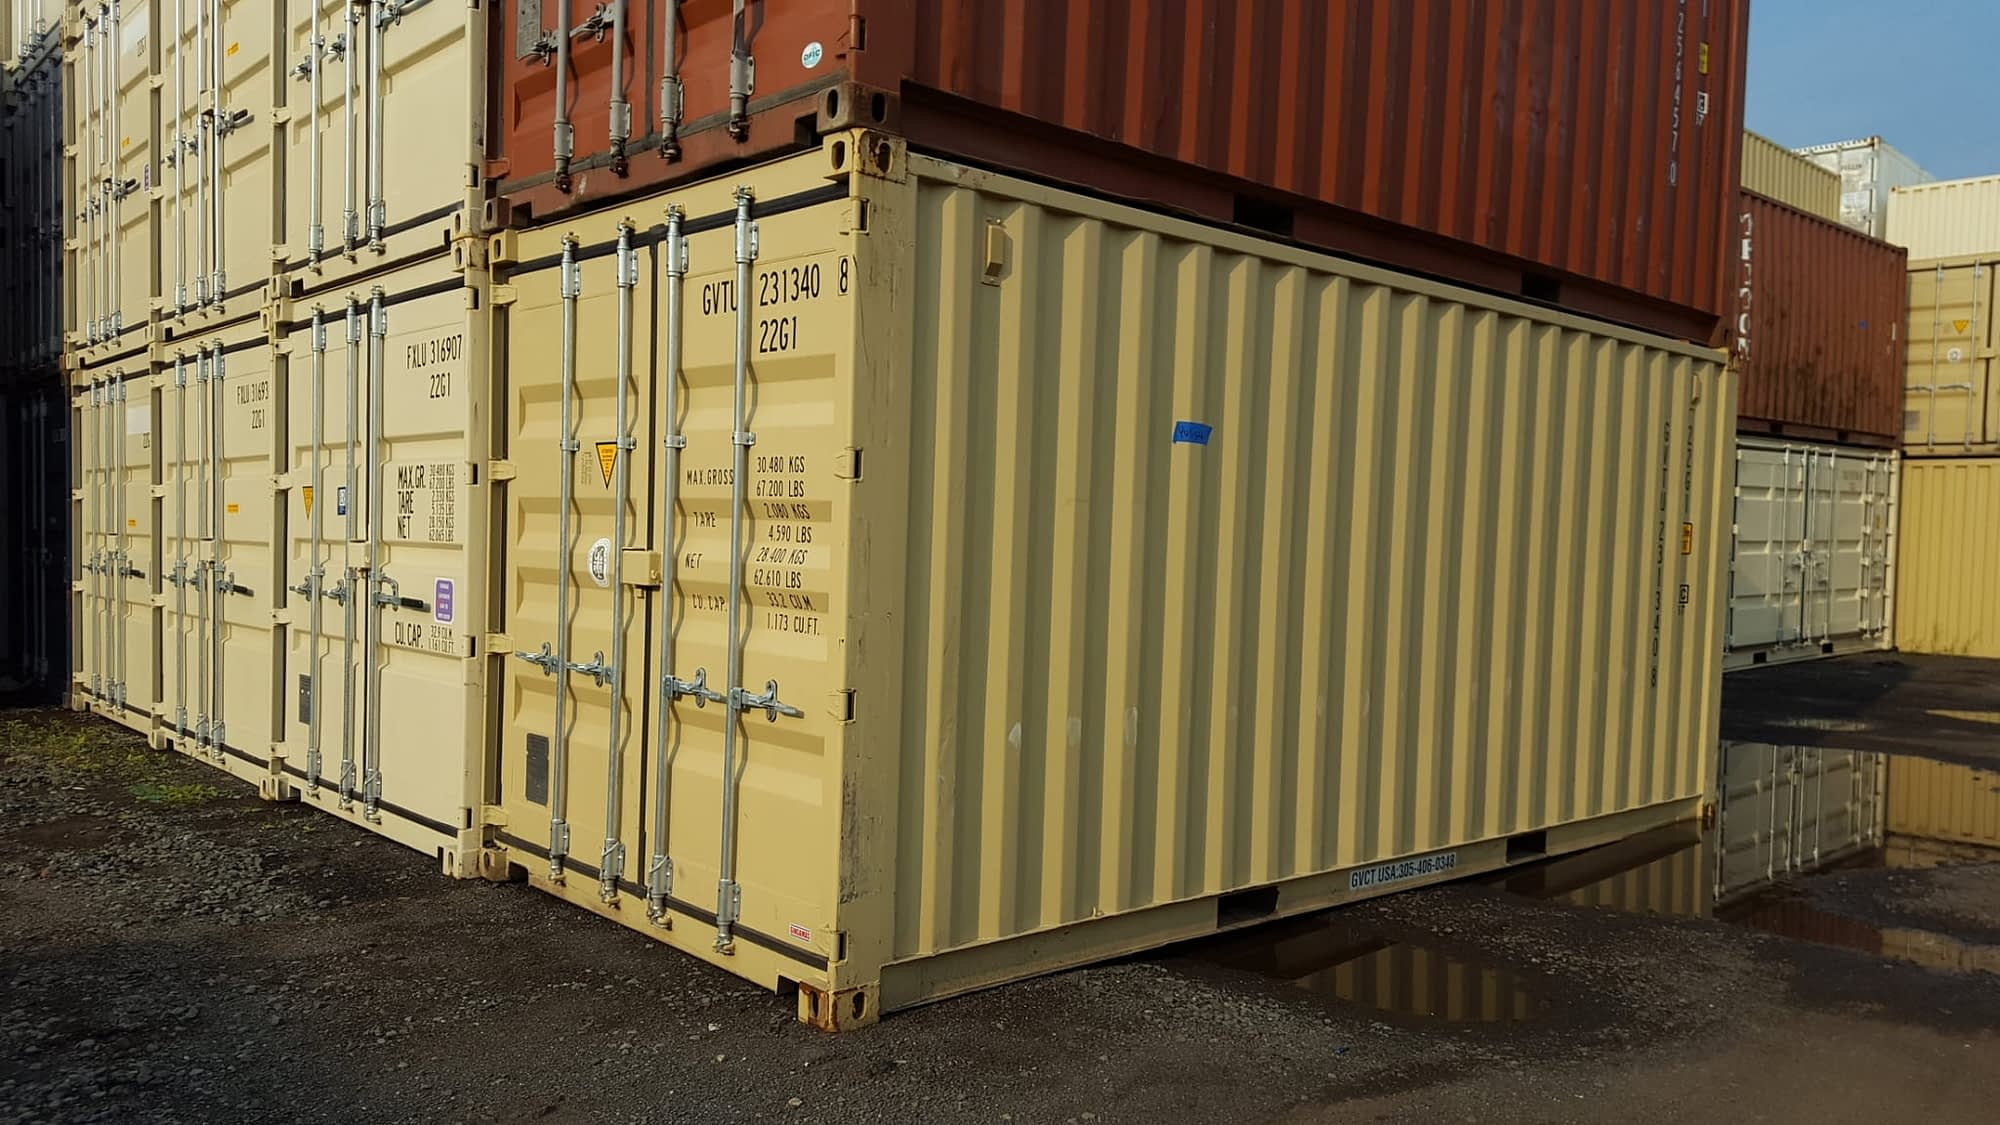 TRS Containers in new condition have lockboxes and fork pockets